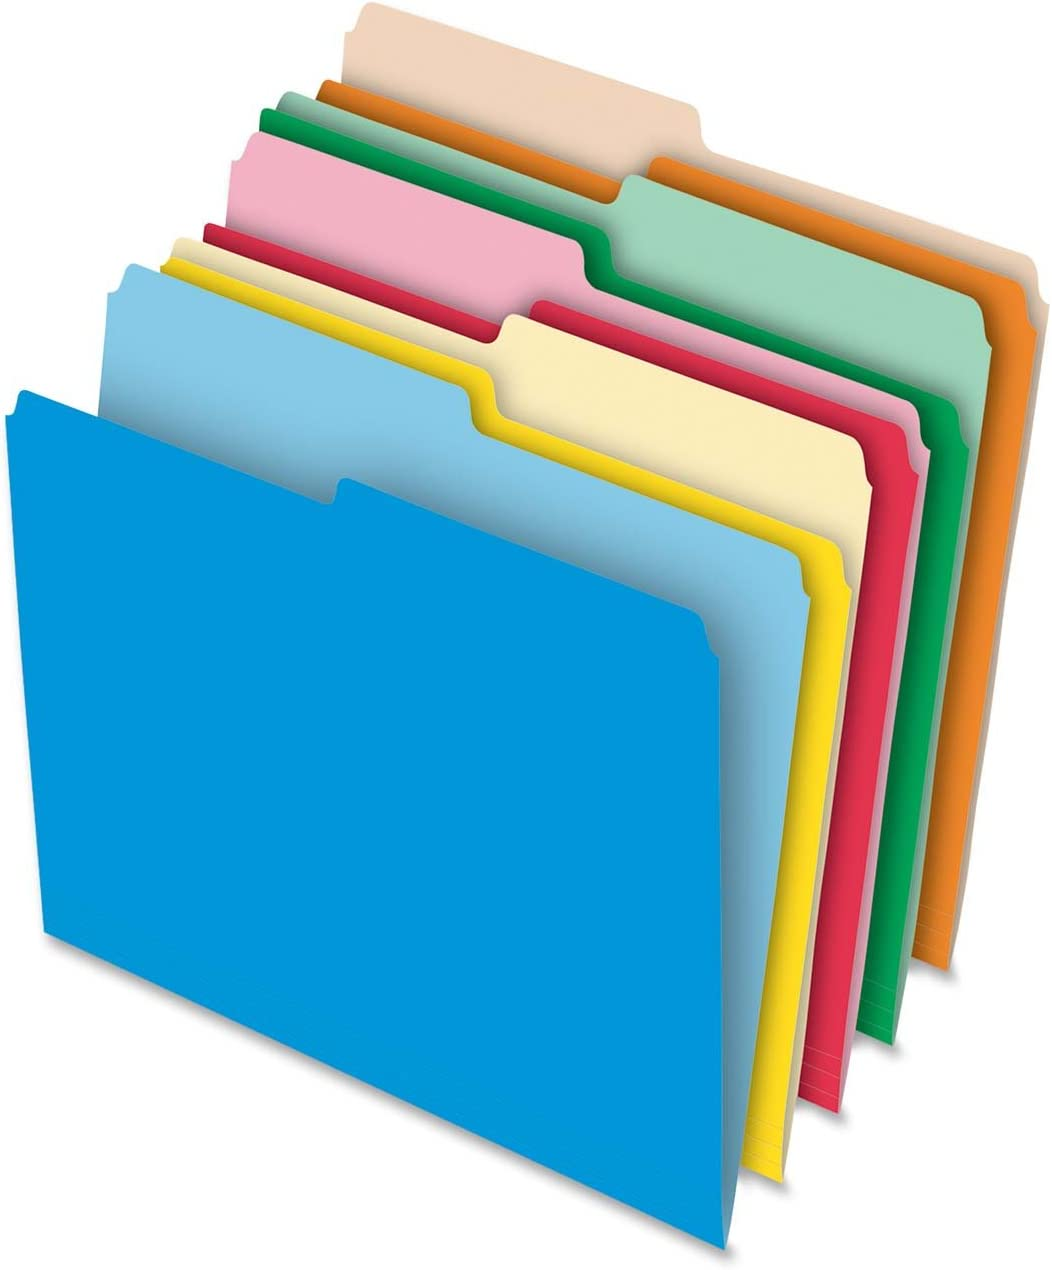 Quality inspection Pendaflex Stretch Tab File Ranking integrated 1st place Folder Letter Per 100 Box Size Ass